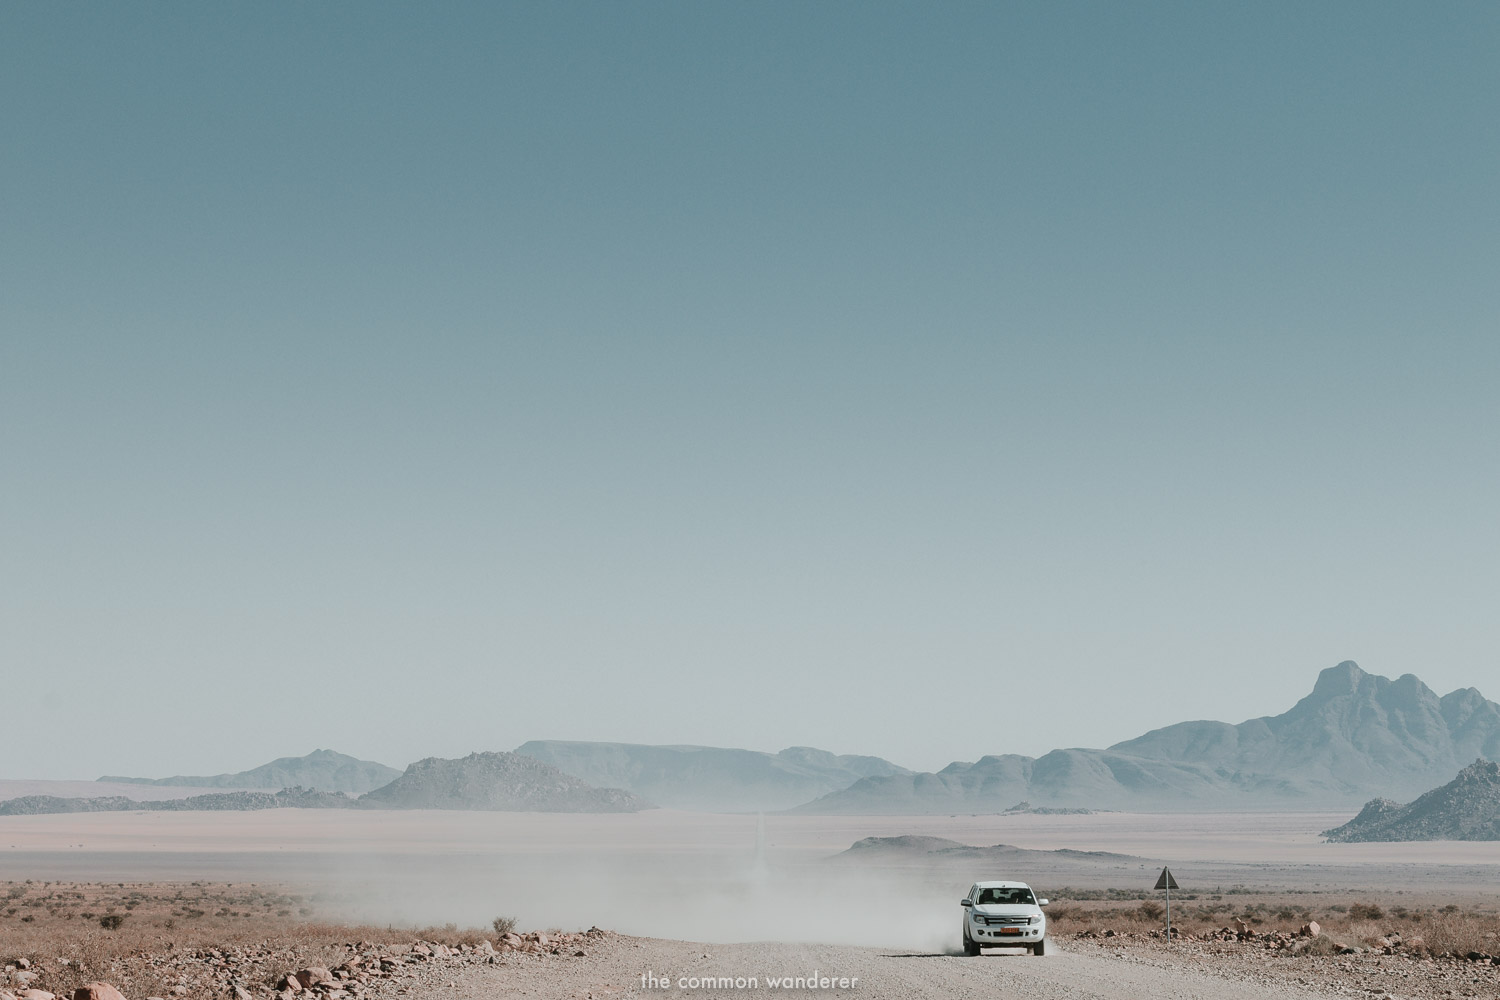 A car driving along a long dirt road in Namibia